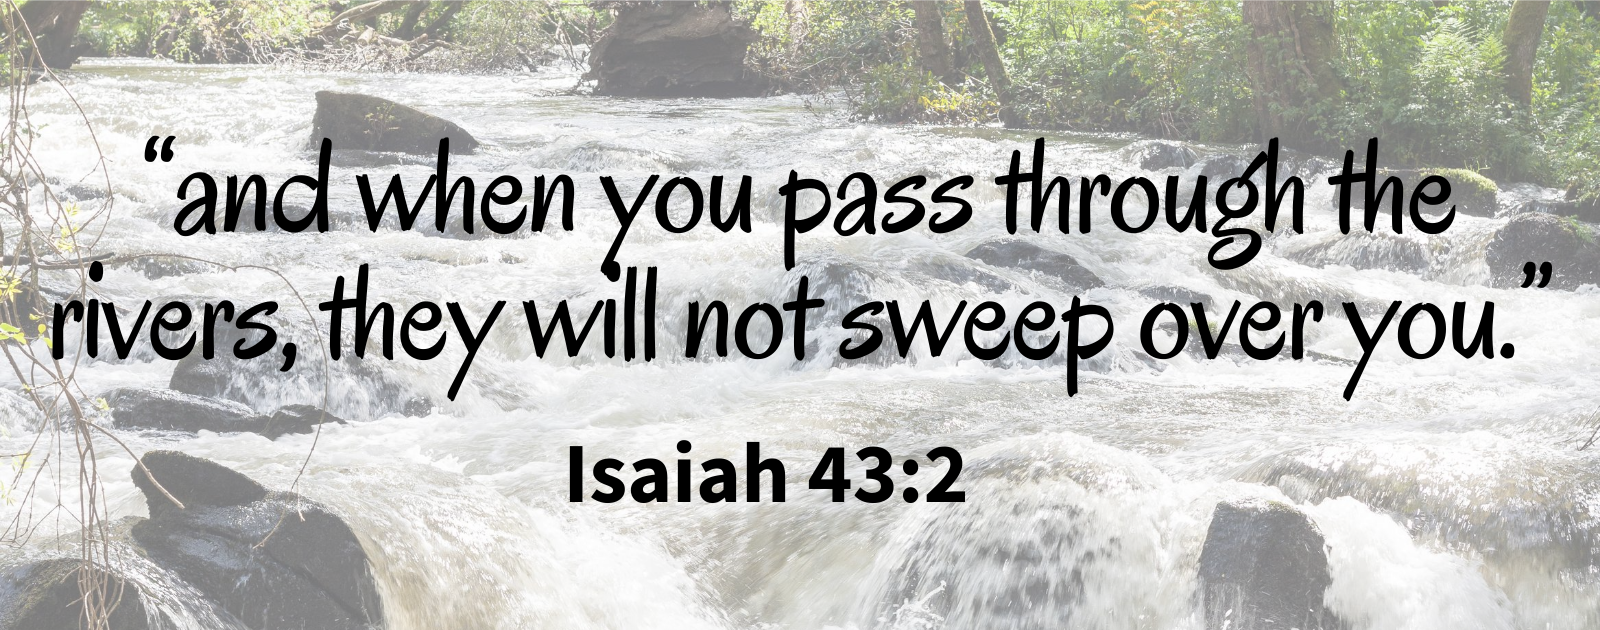 and when you pass through the rivers, they will not sweep over you